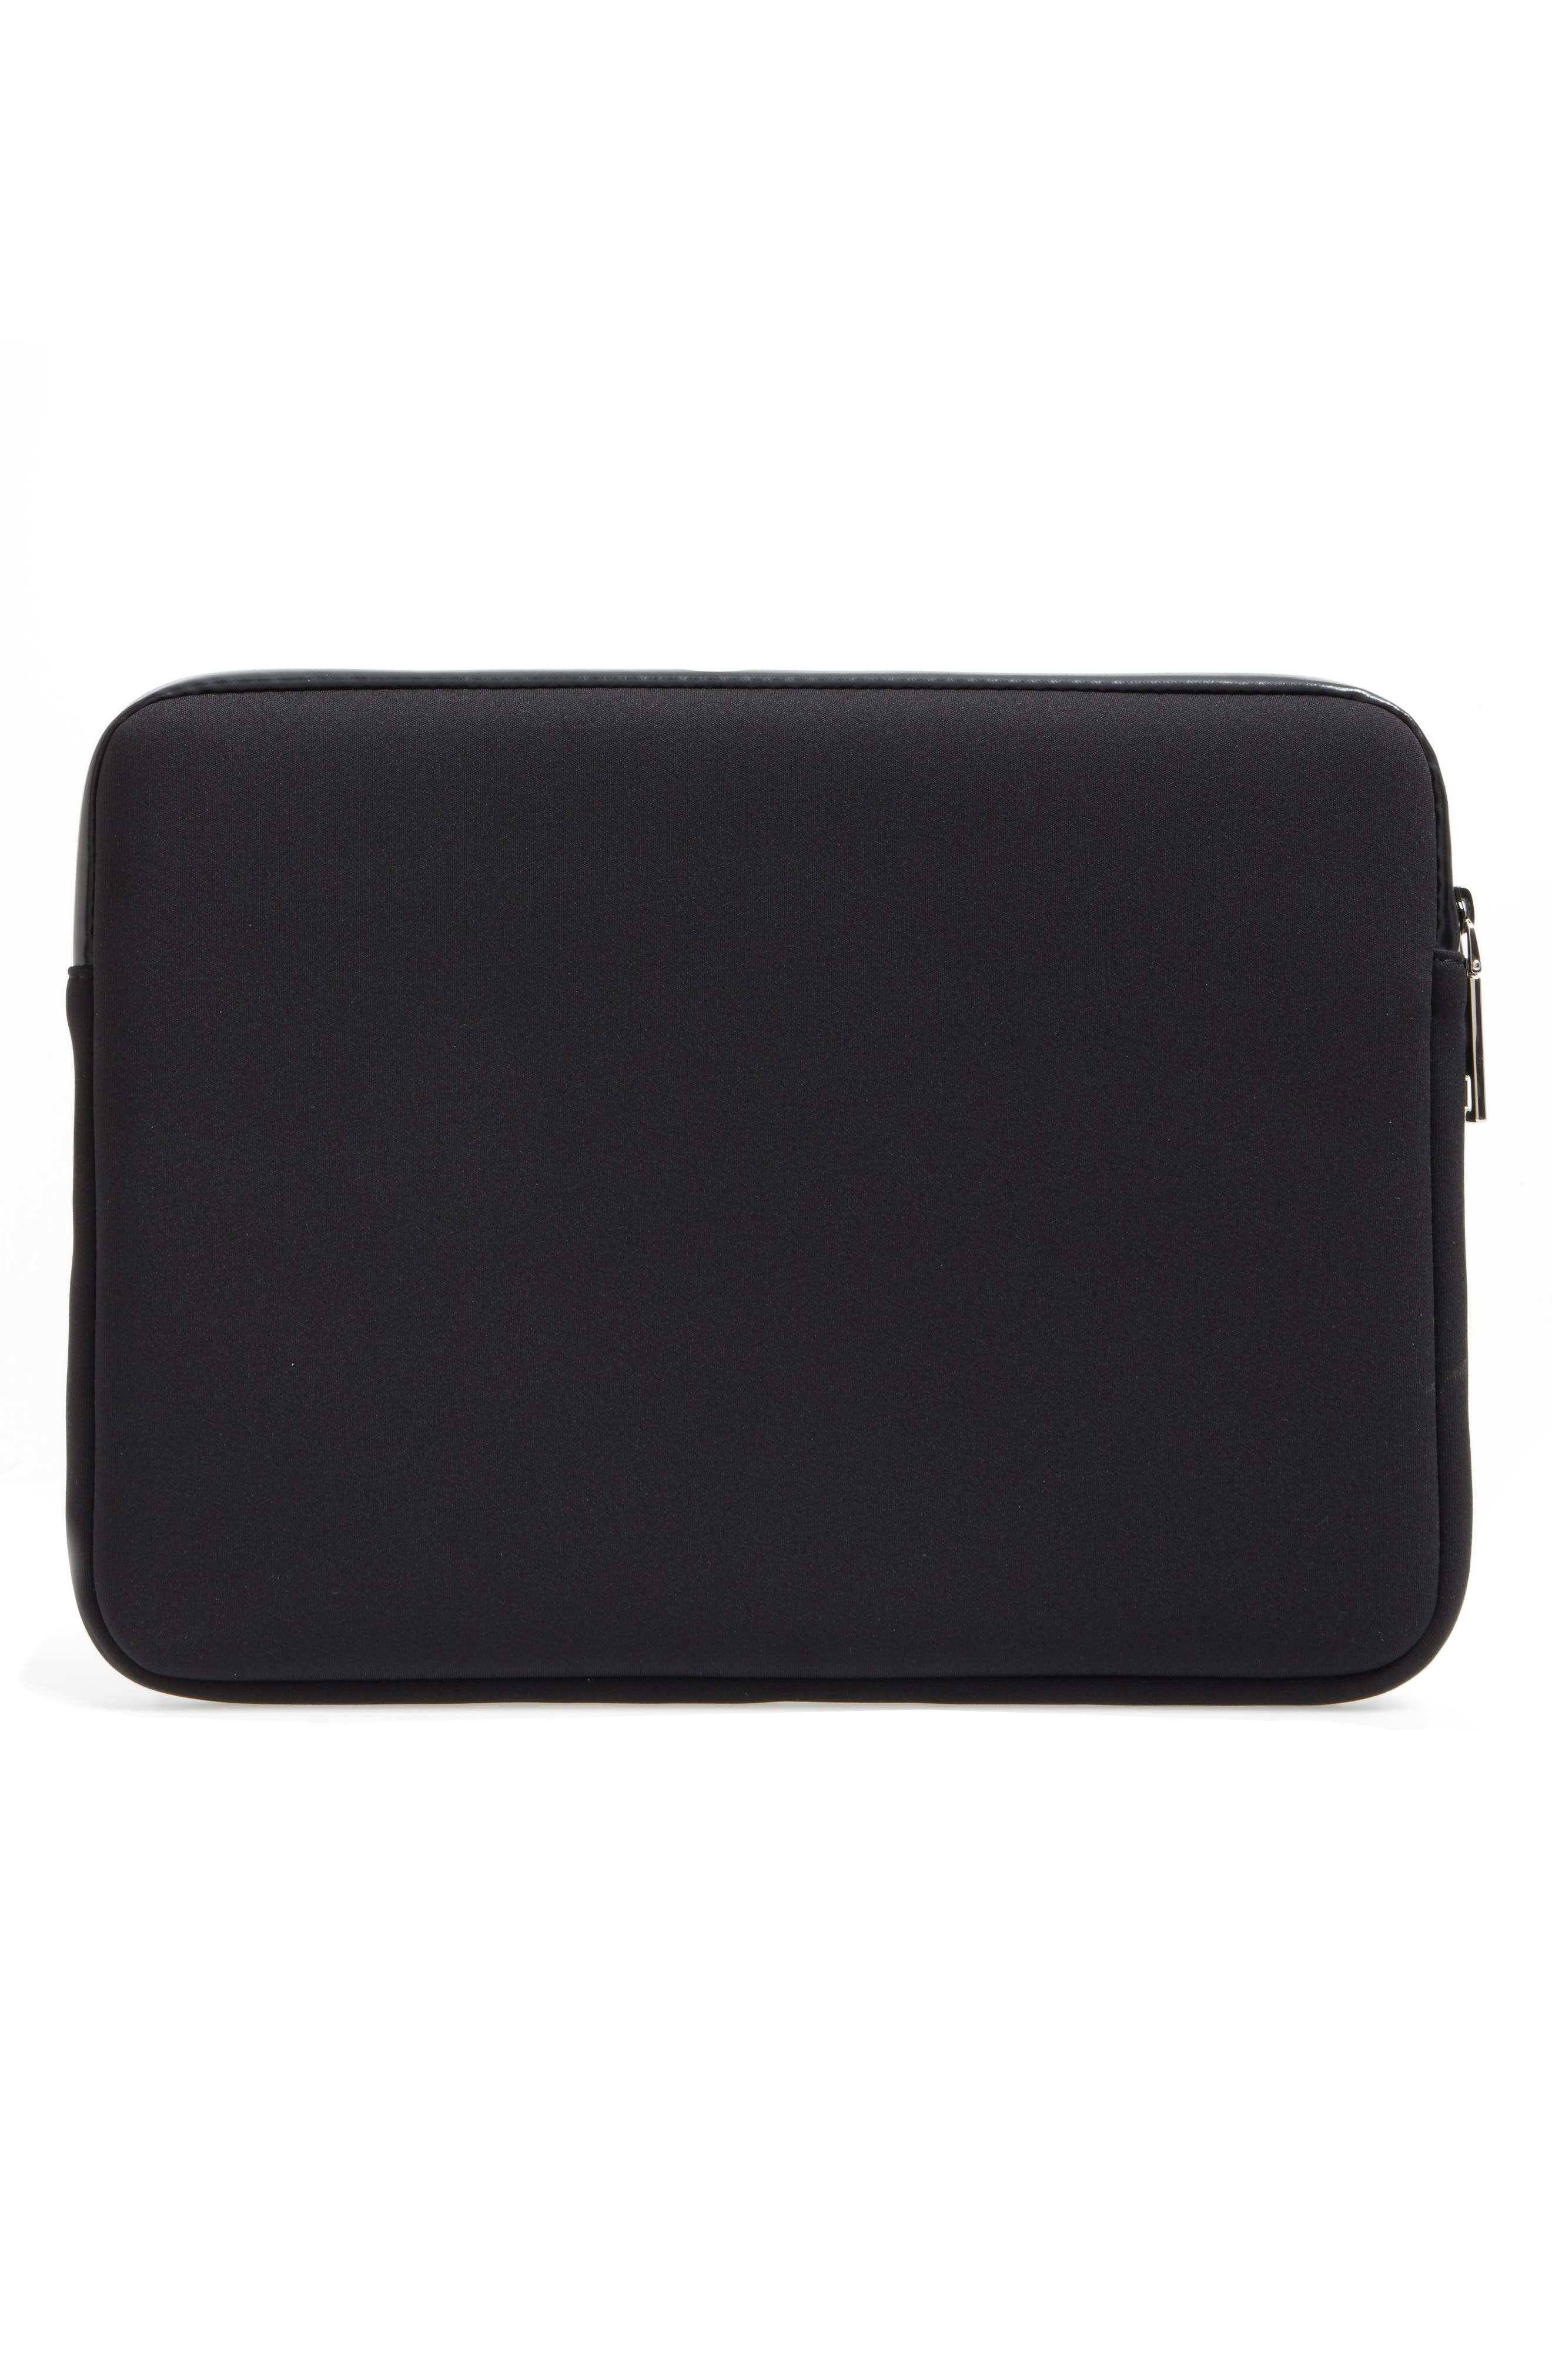 13 Inch Laptop Sleeve,                             Alternate thumbnail 4, color,                             001